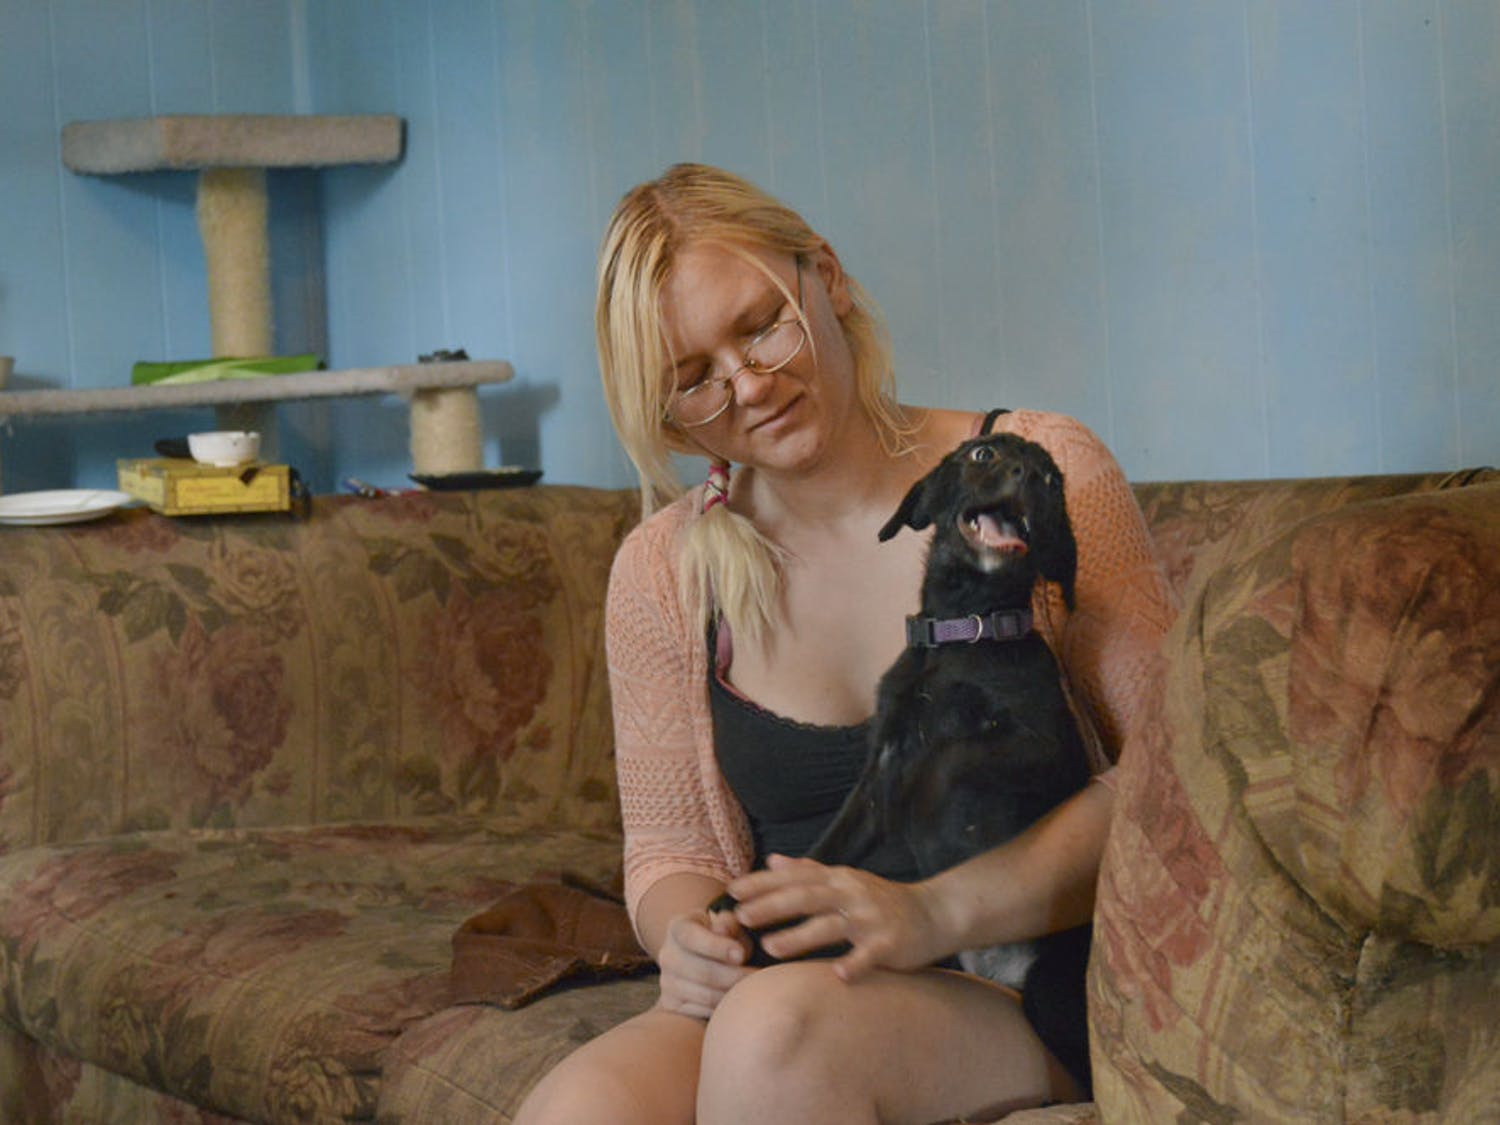 Rebecca Pardini plays in her home with Angel, a puppy she's taking care of for a friend. The 22-year-old was homeless for three years.